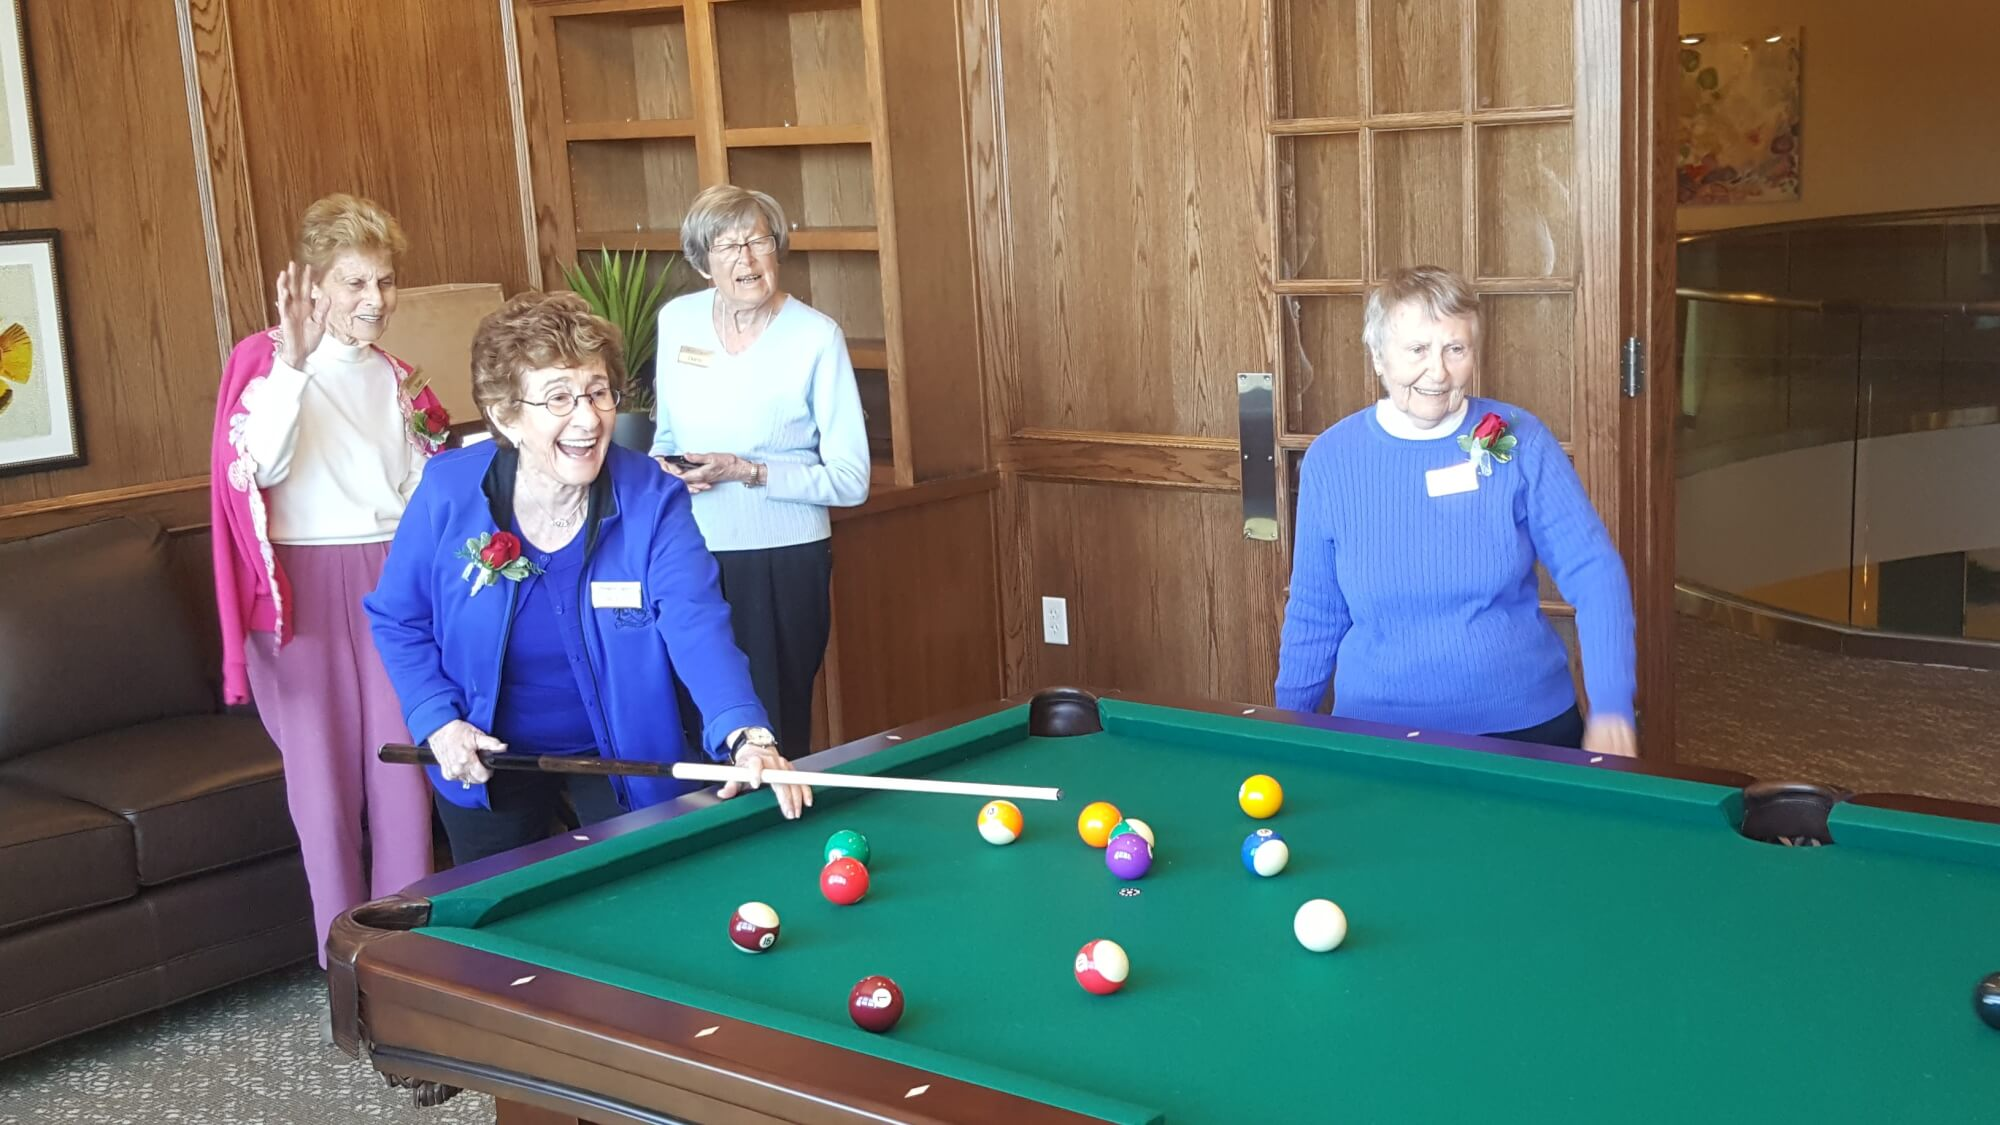 residents playing pool in Bradford Square's billiards room